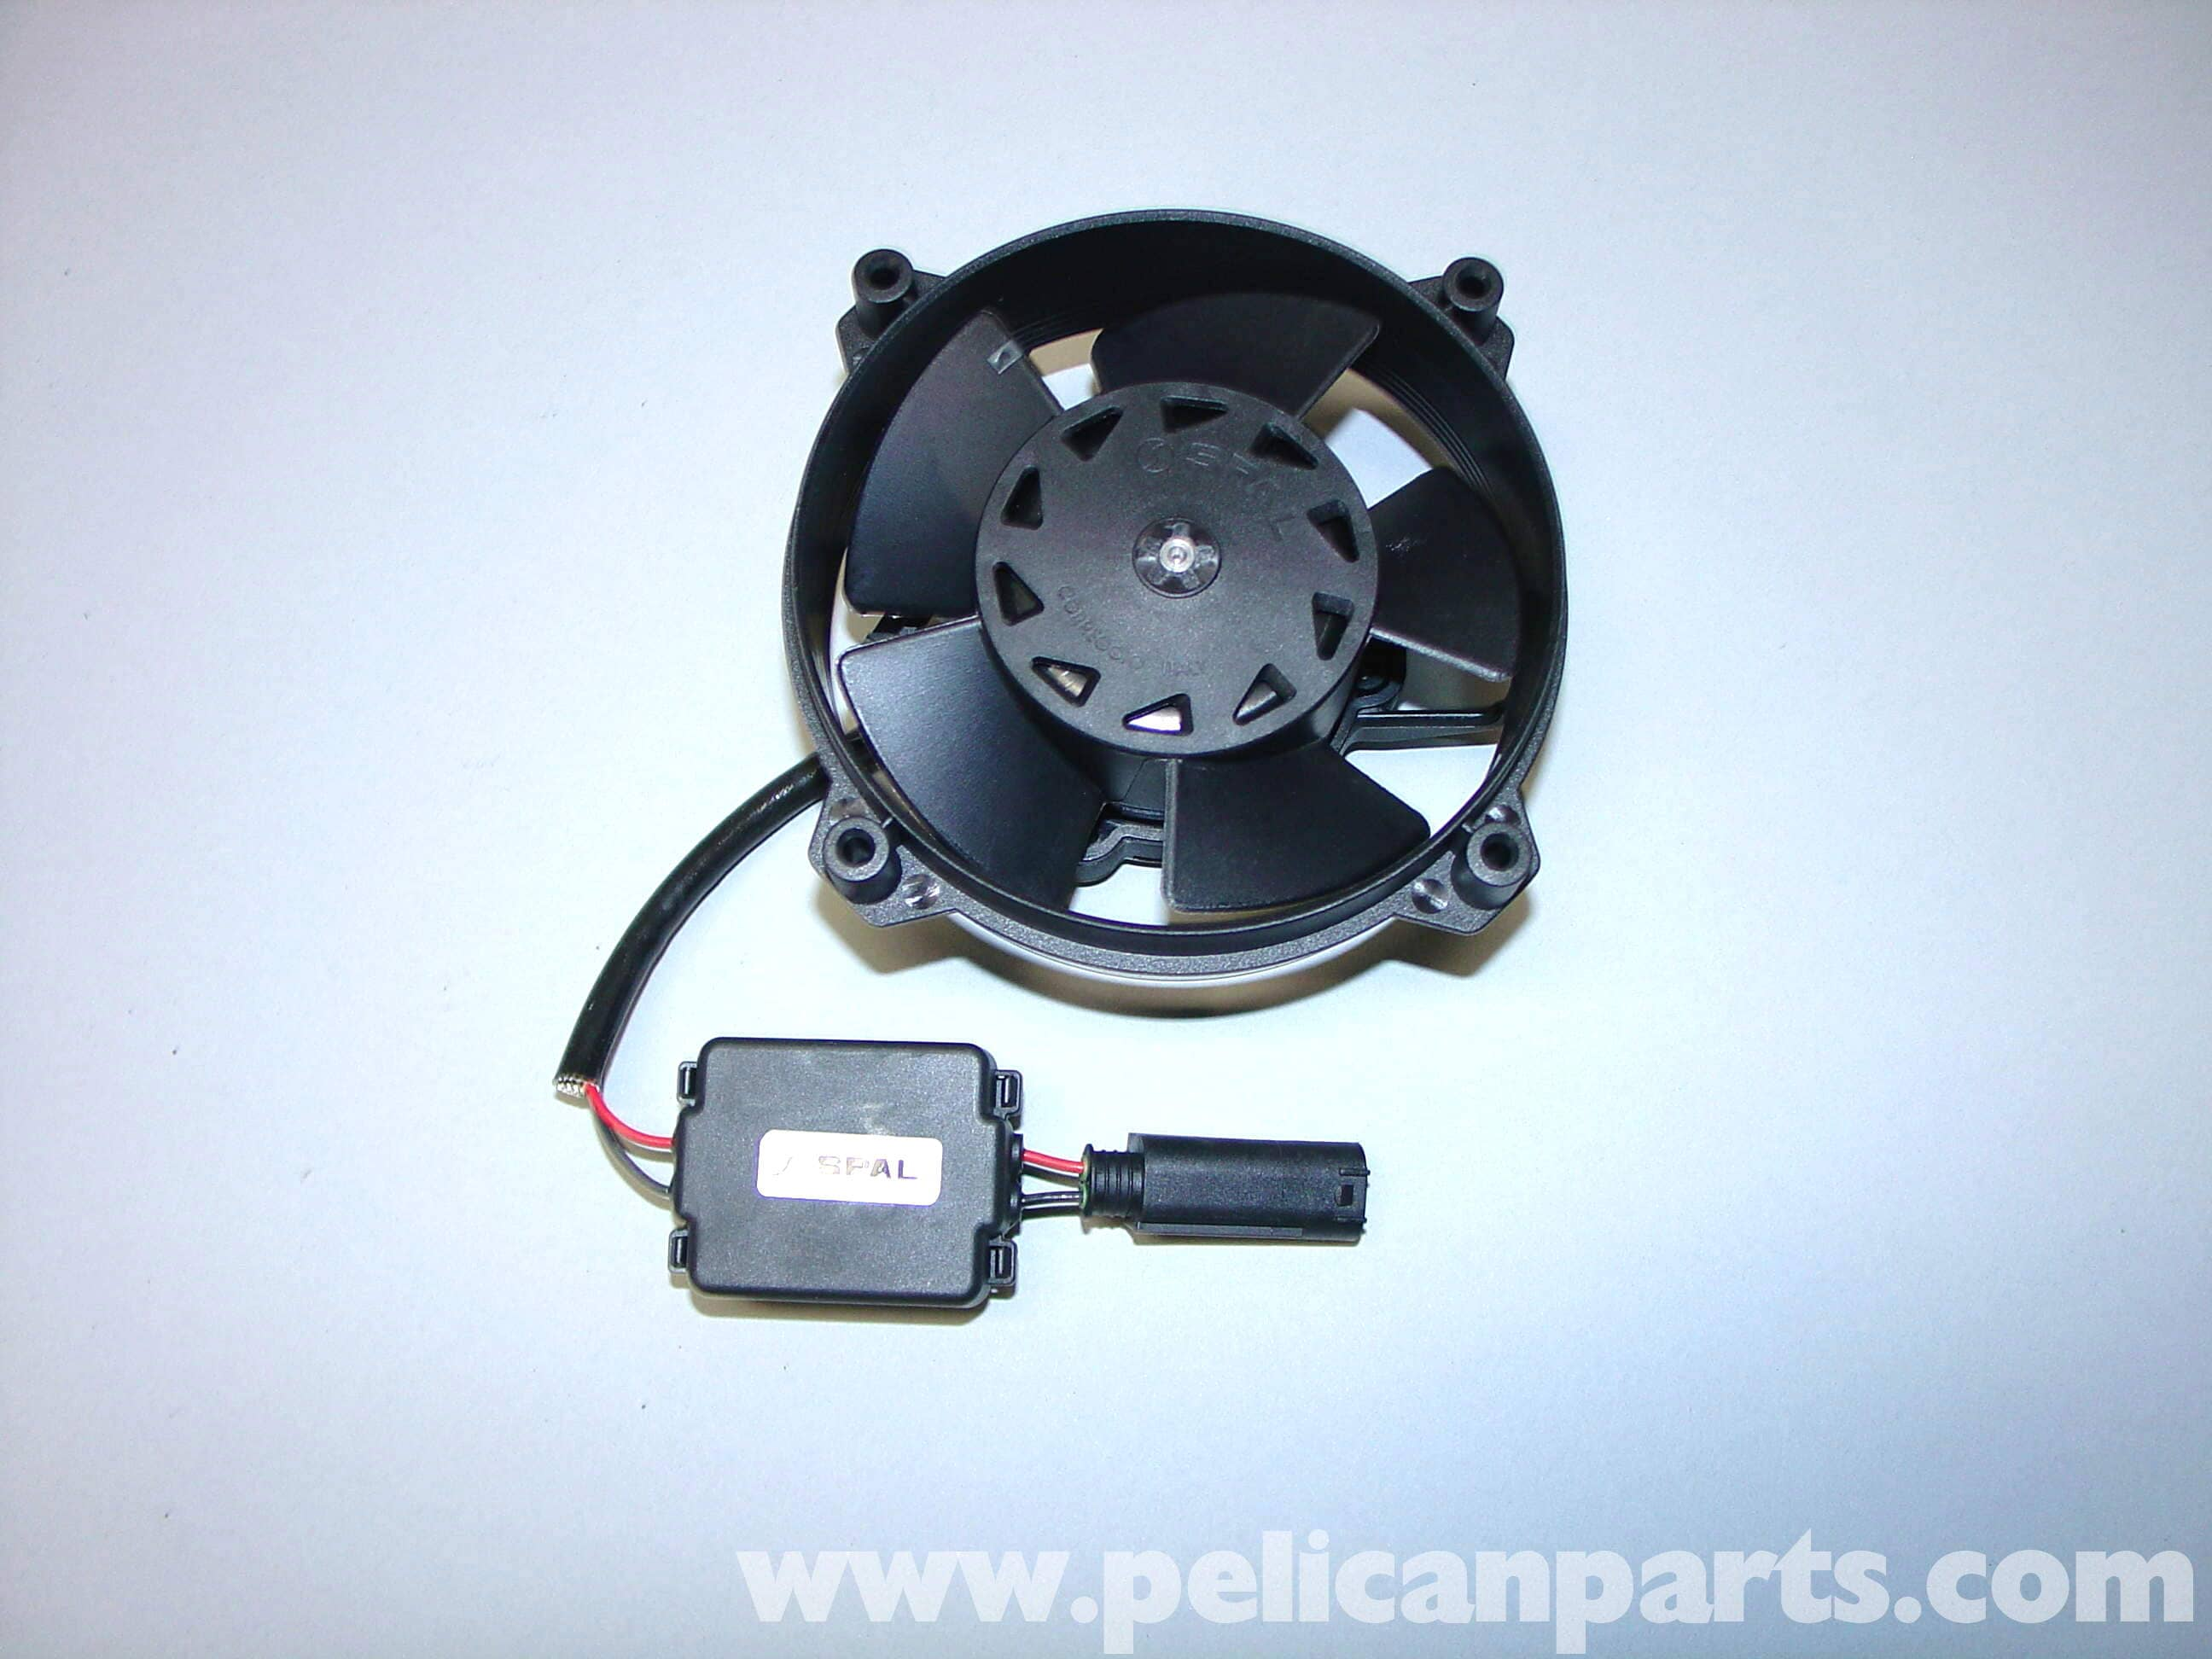 Mini Cooper Power Steering Fan Replacement R50 R52 R53 2001 2006 2002 Wiring Diagram Large Image Extra